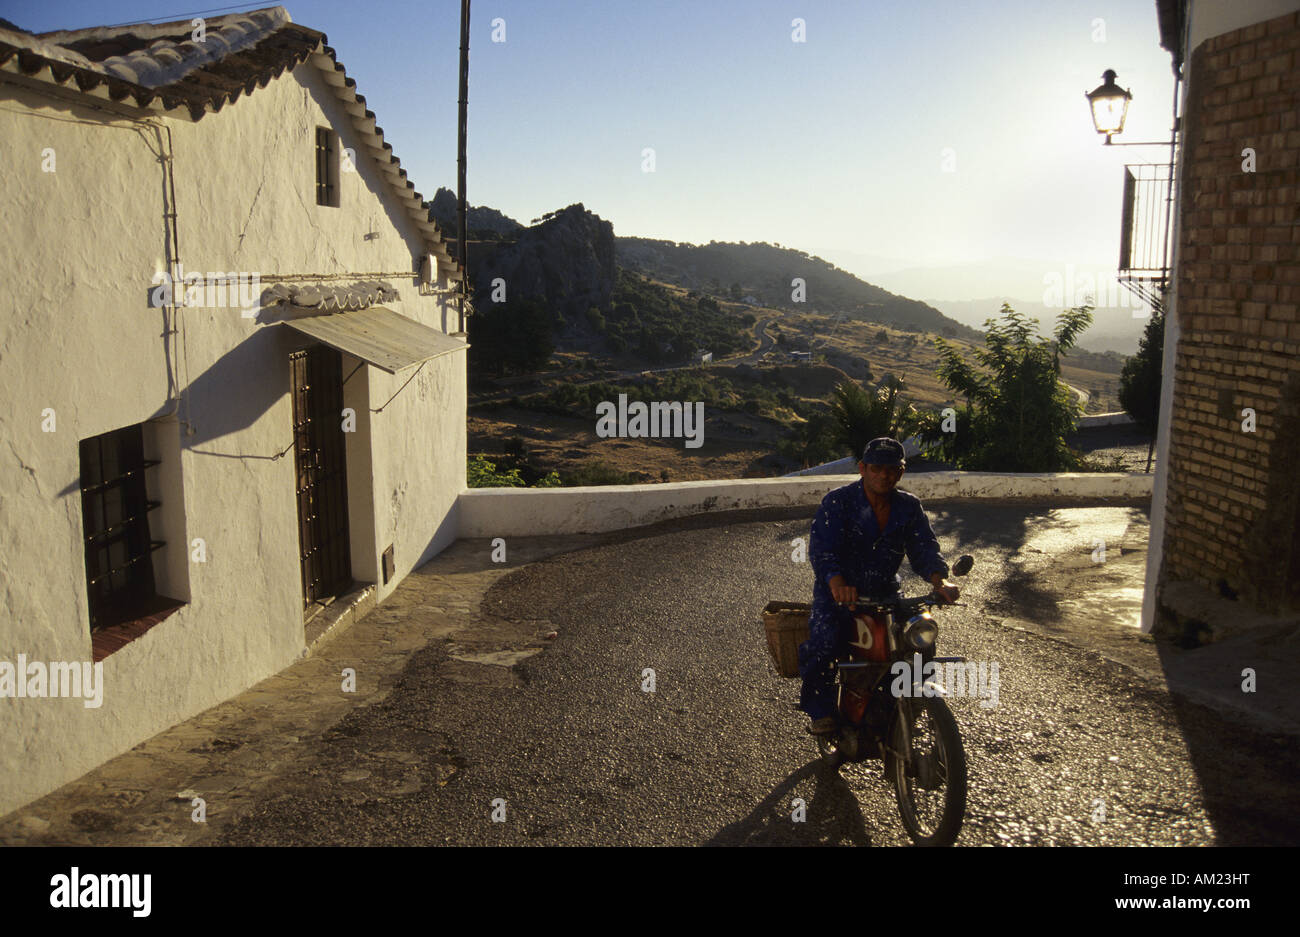 Village of GRAZALEMA Province of Cadiz Region of Andalusia Spain Stock Photo